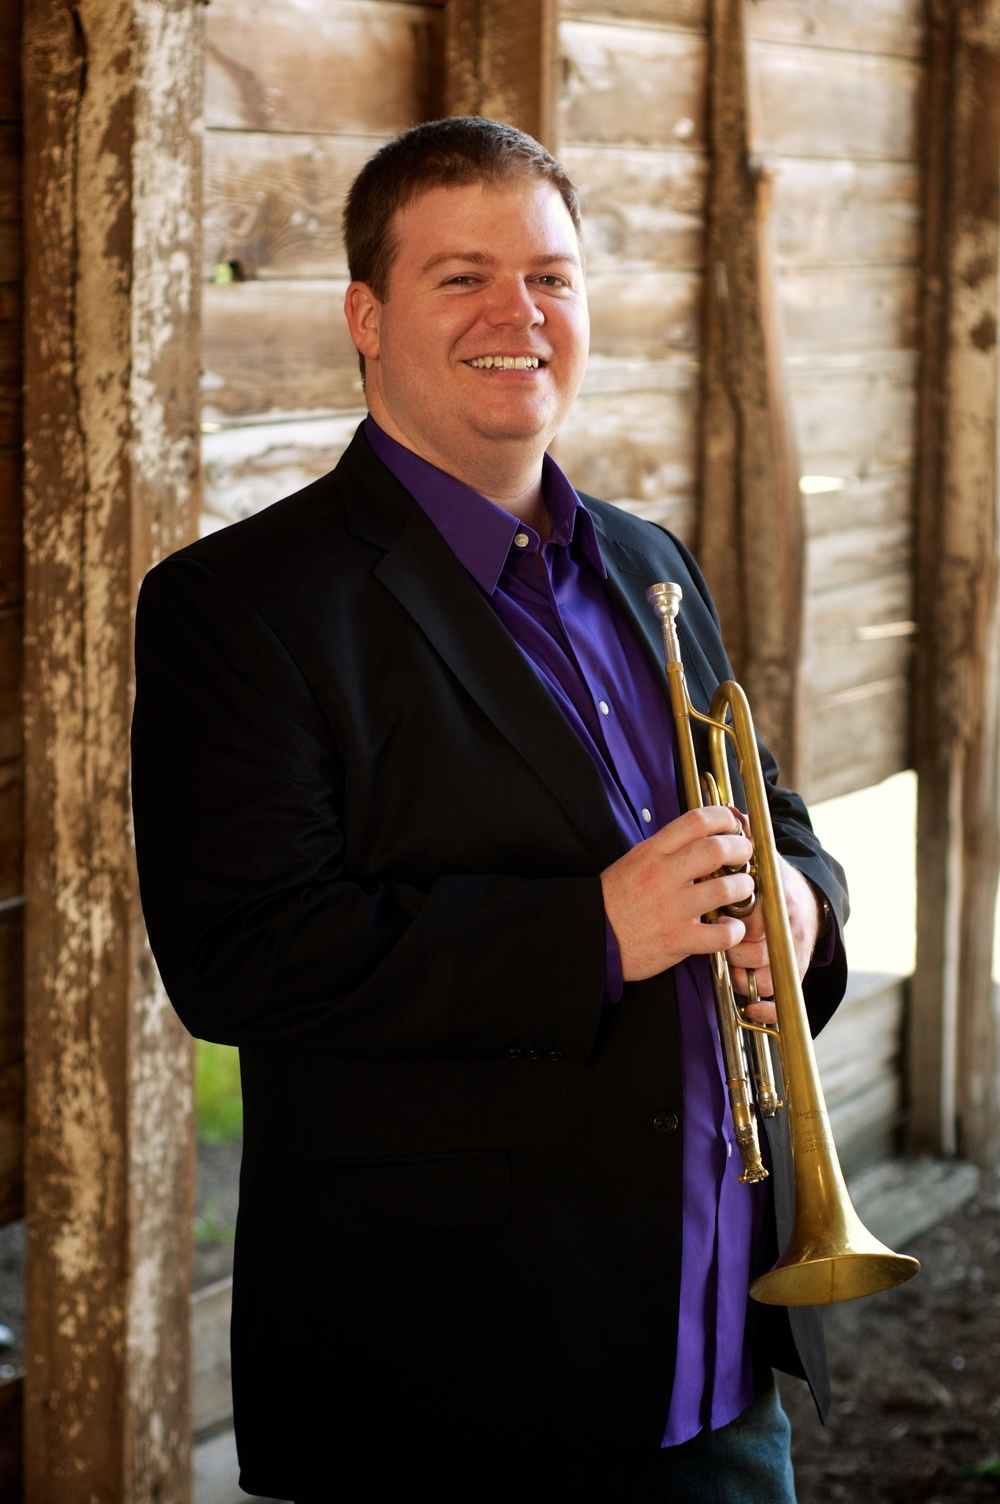 Sean Butterfield, trumpets/arranging  University of Idaho